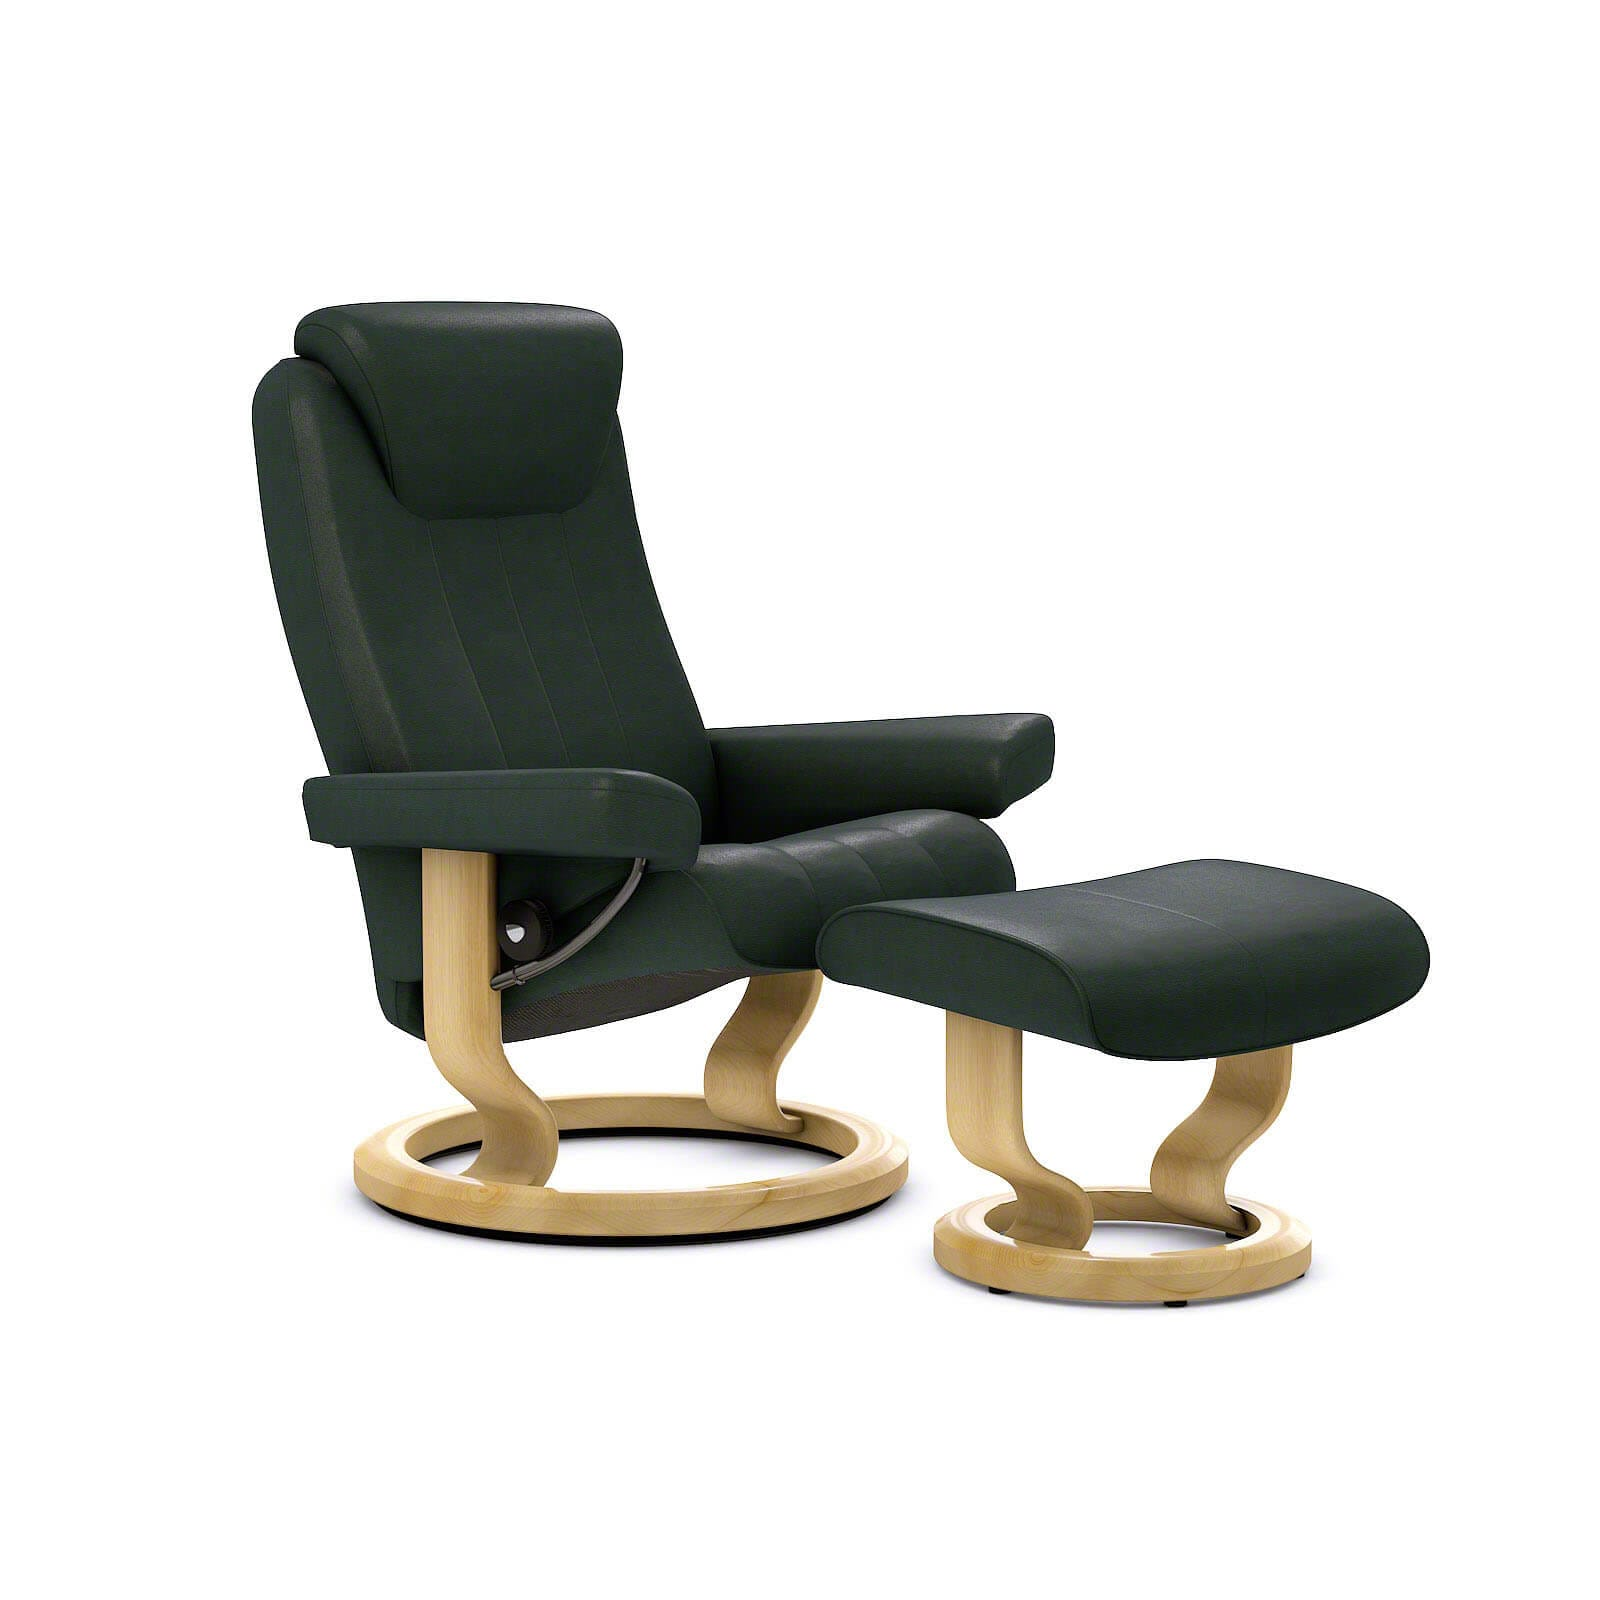 Stressless Consul M Sessel Und Hocker Stressless Bliss Sessel Paloma New Forest Mit Hocker